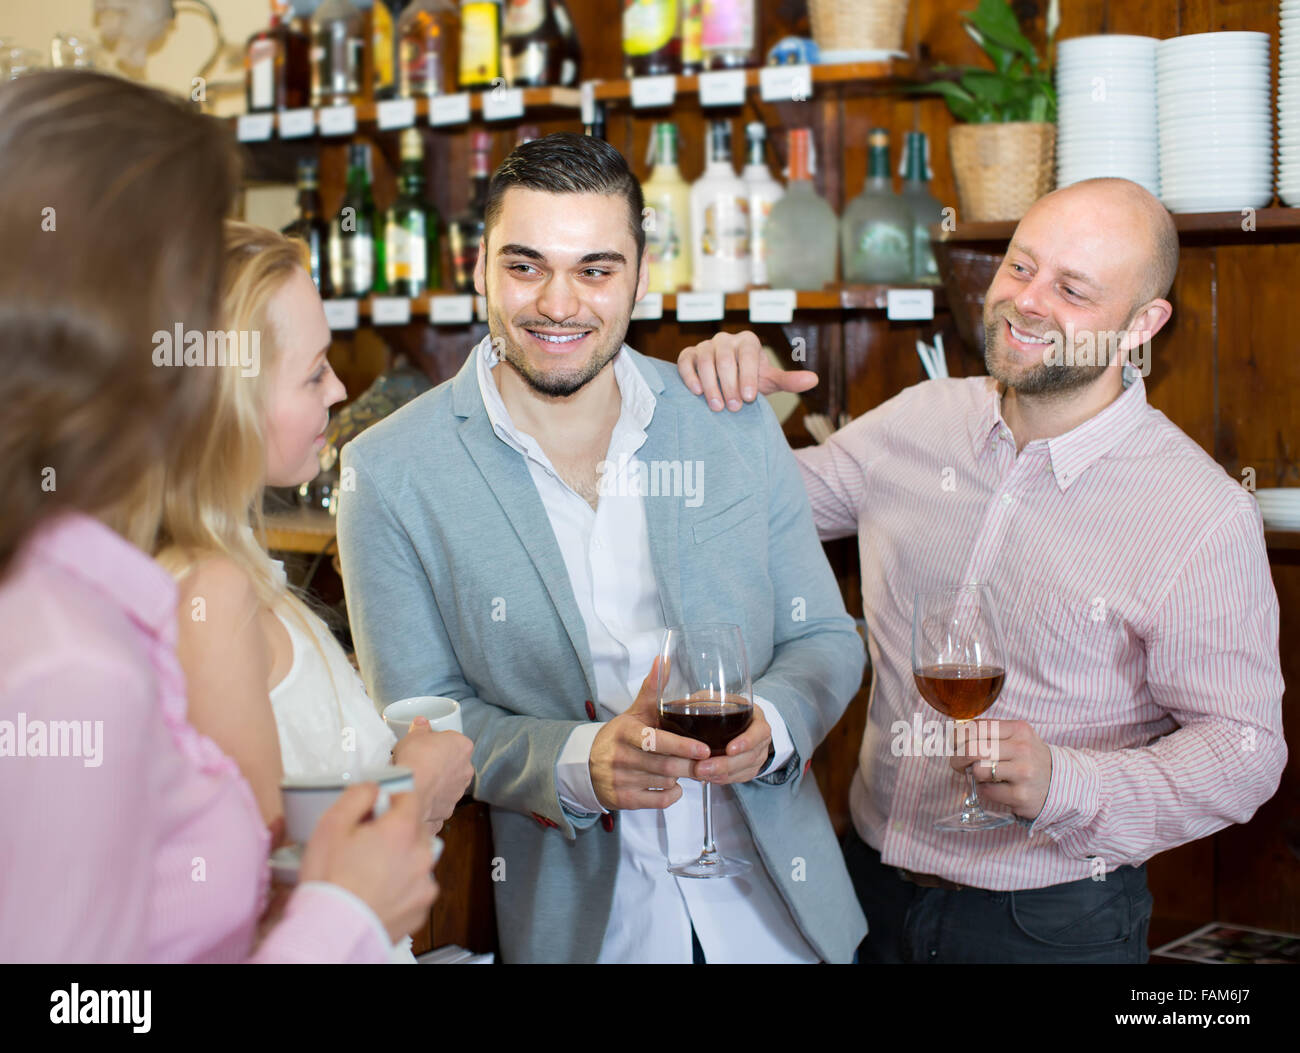 Casual acquaintance of smiling young adults at bar. Selective focus - Stock Image